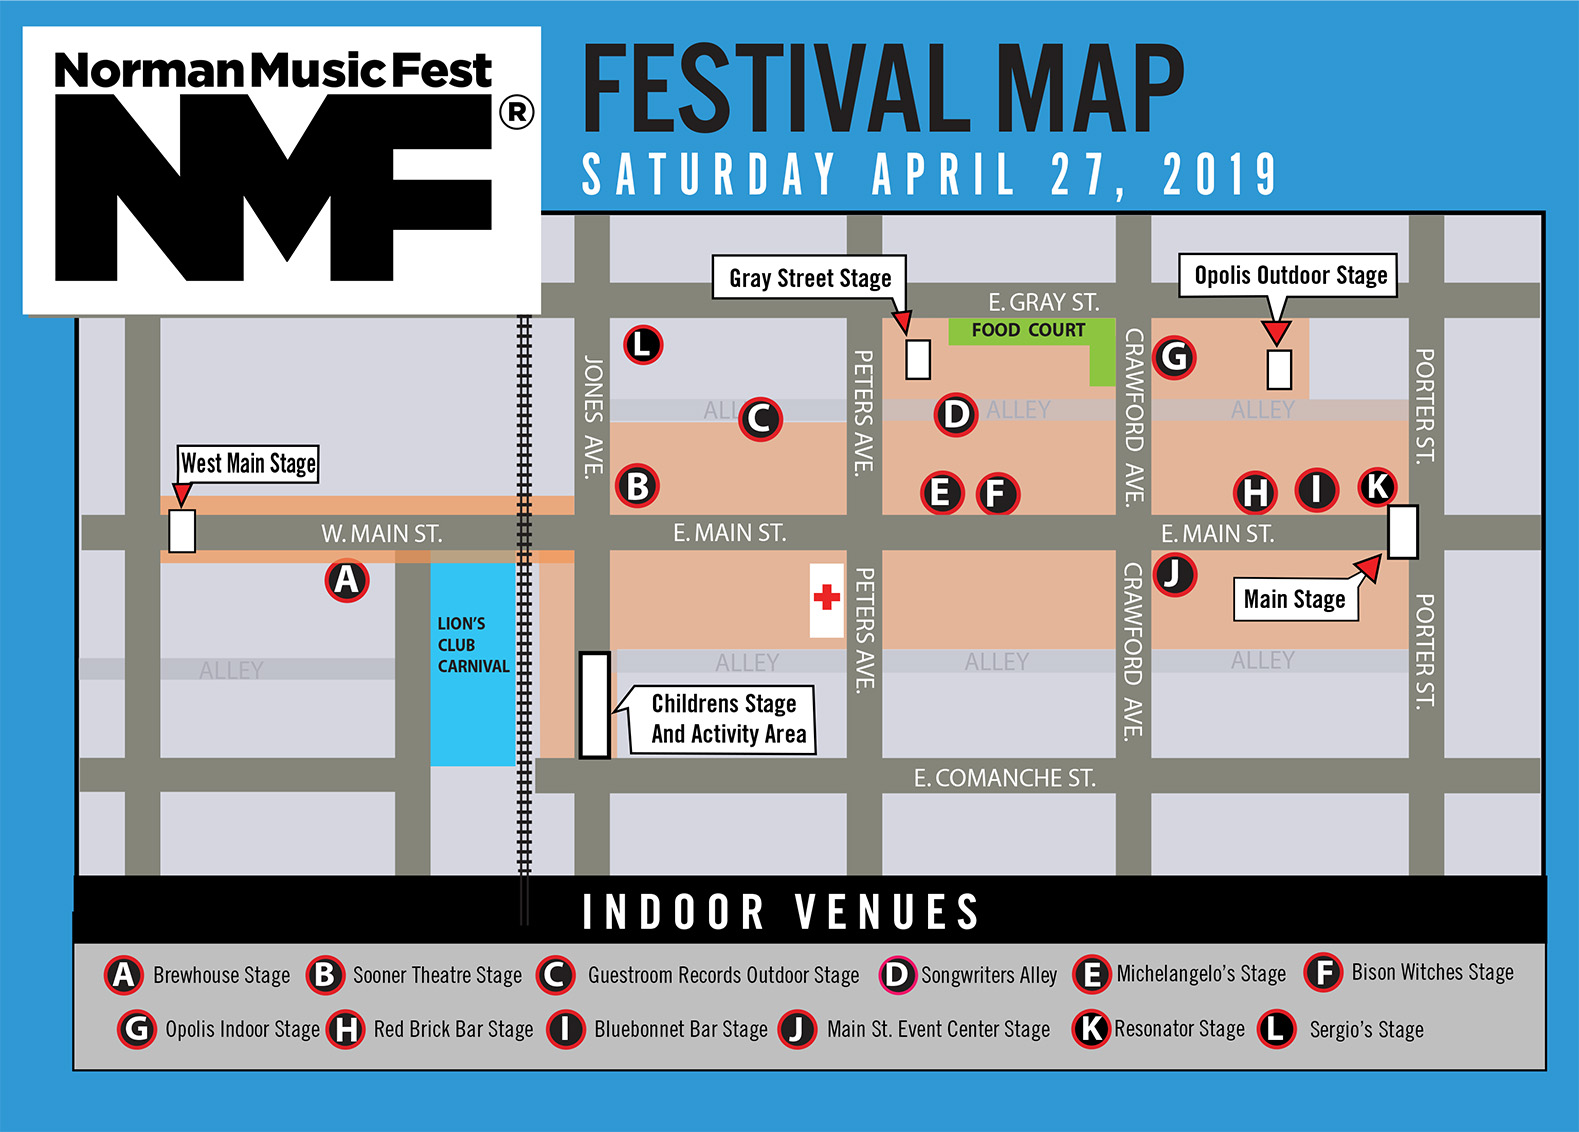 Norman Music Festival | Free. Original. Oklahoma. | Map ... on travel directions, mapquest directions, scale directions, compass directions, giving directions, traffic directions, get directions, driving directions,